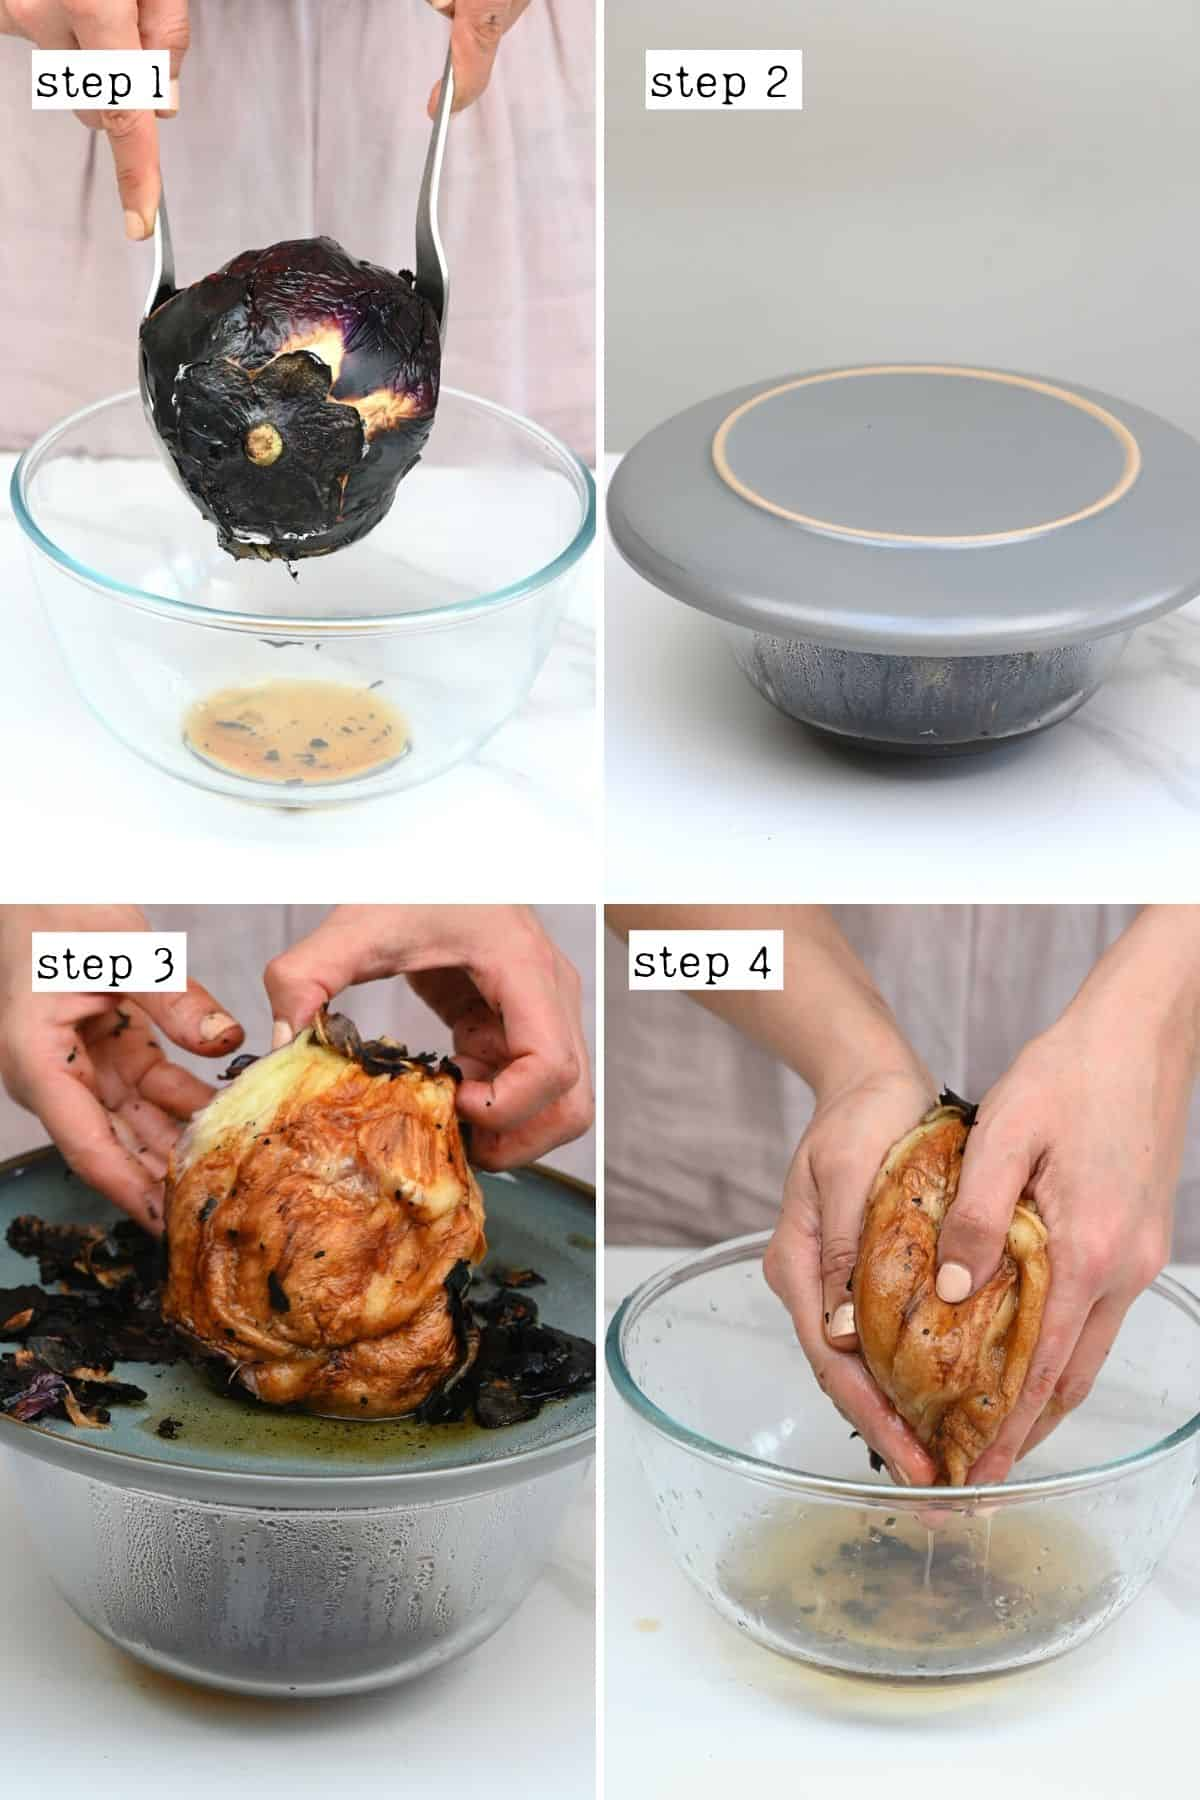 Steps for steaming and peeling eggplant